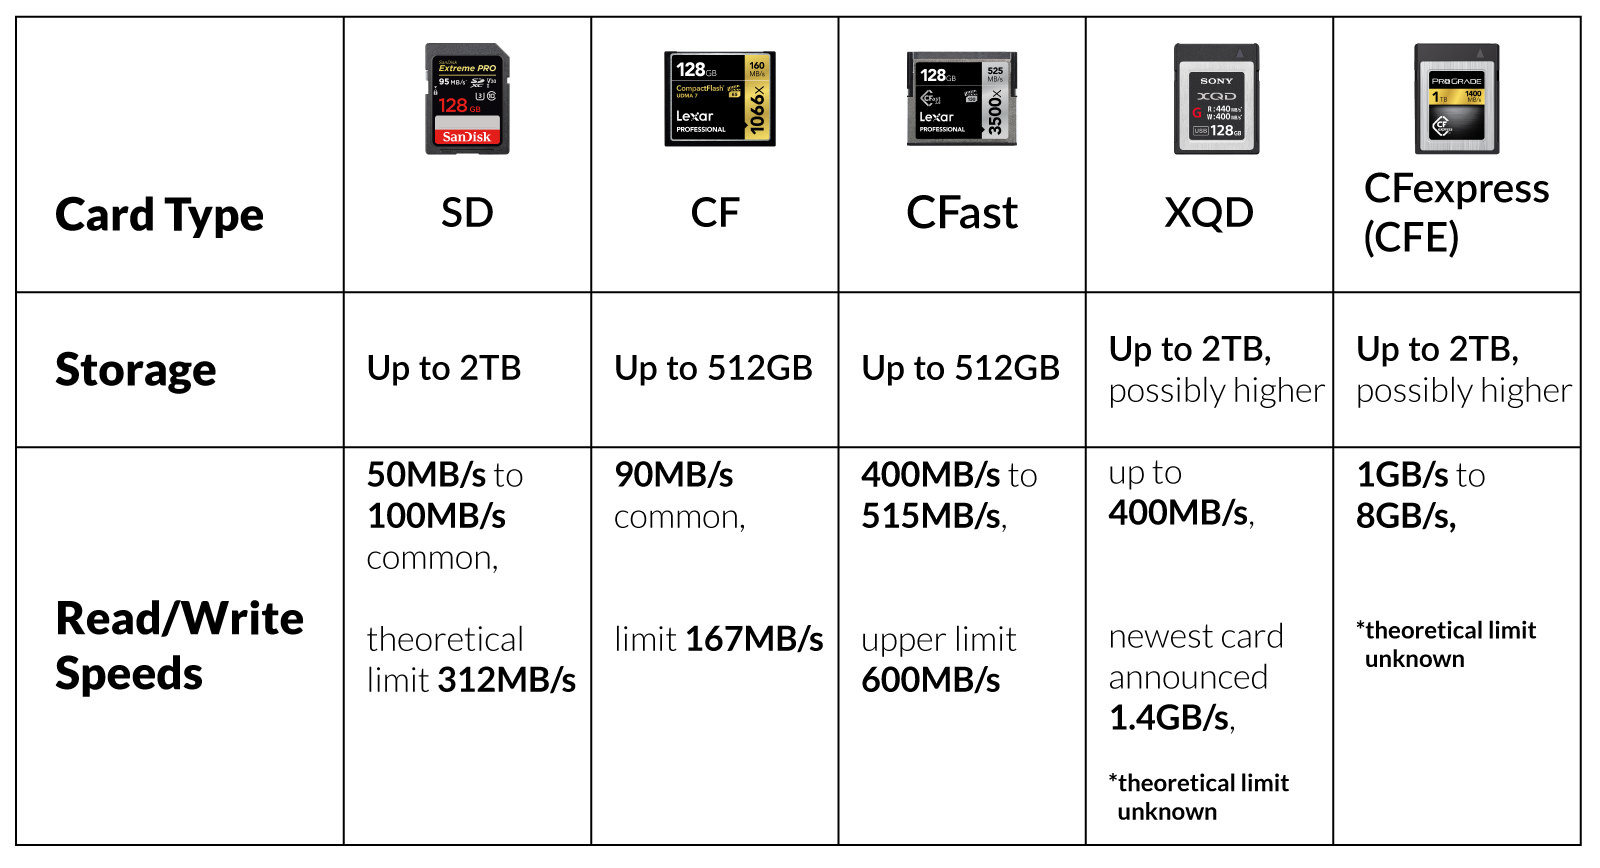 XQD Cards: Everything You Need to Know + CFexpress Comparison